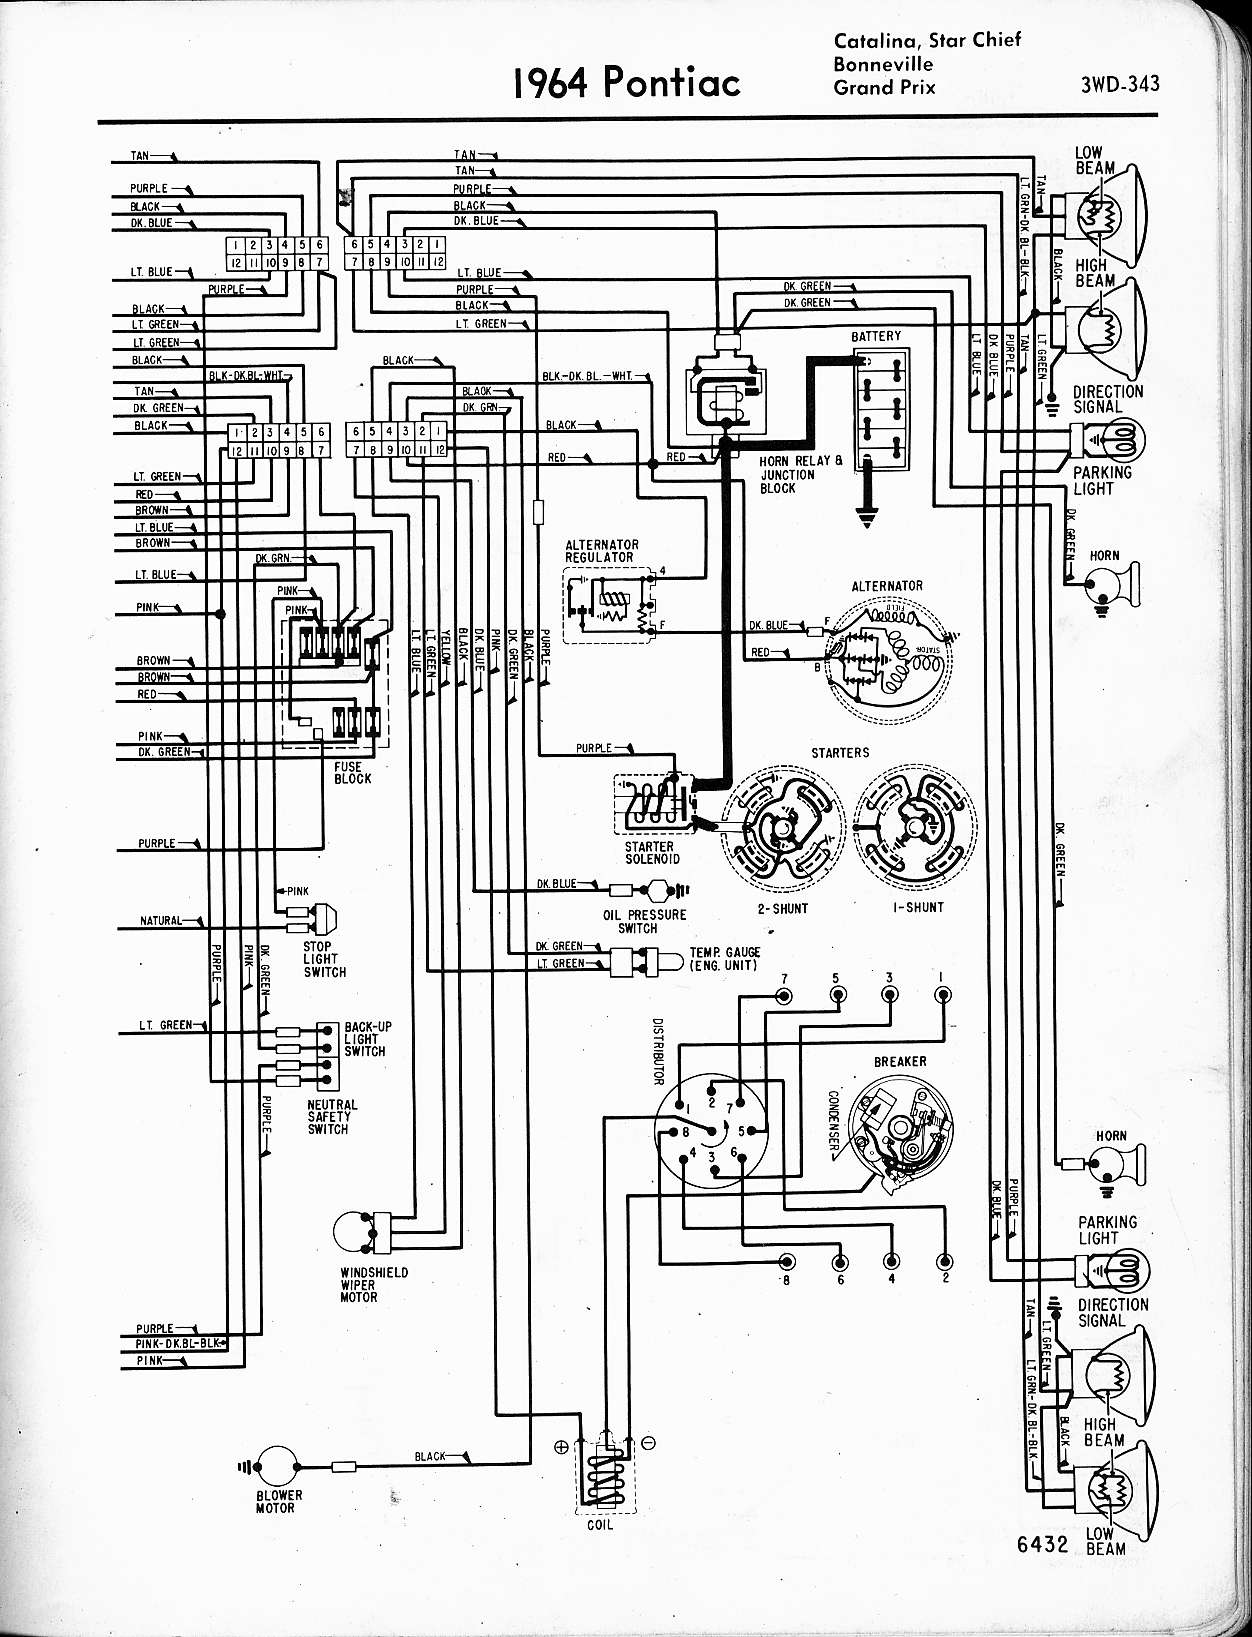 Pontiac Lemans Wiring Diagram Layout Diagrams 1970 Le Mans Schematic 1967 U2022 Rh Laurafinlay Co Uk